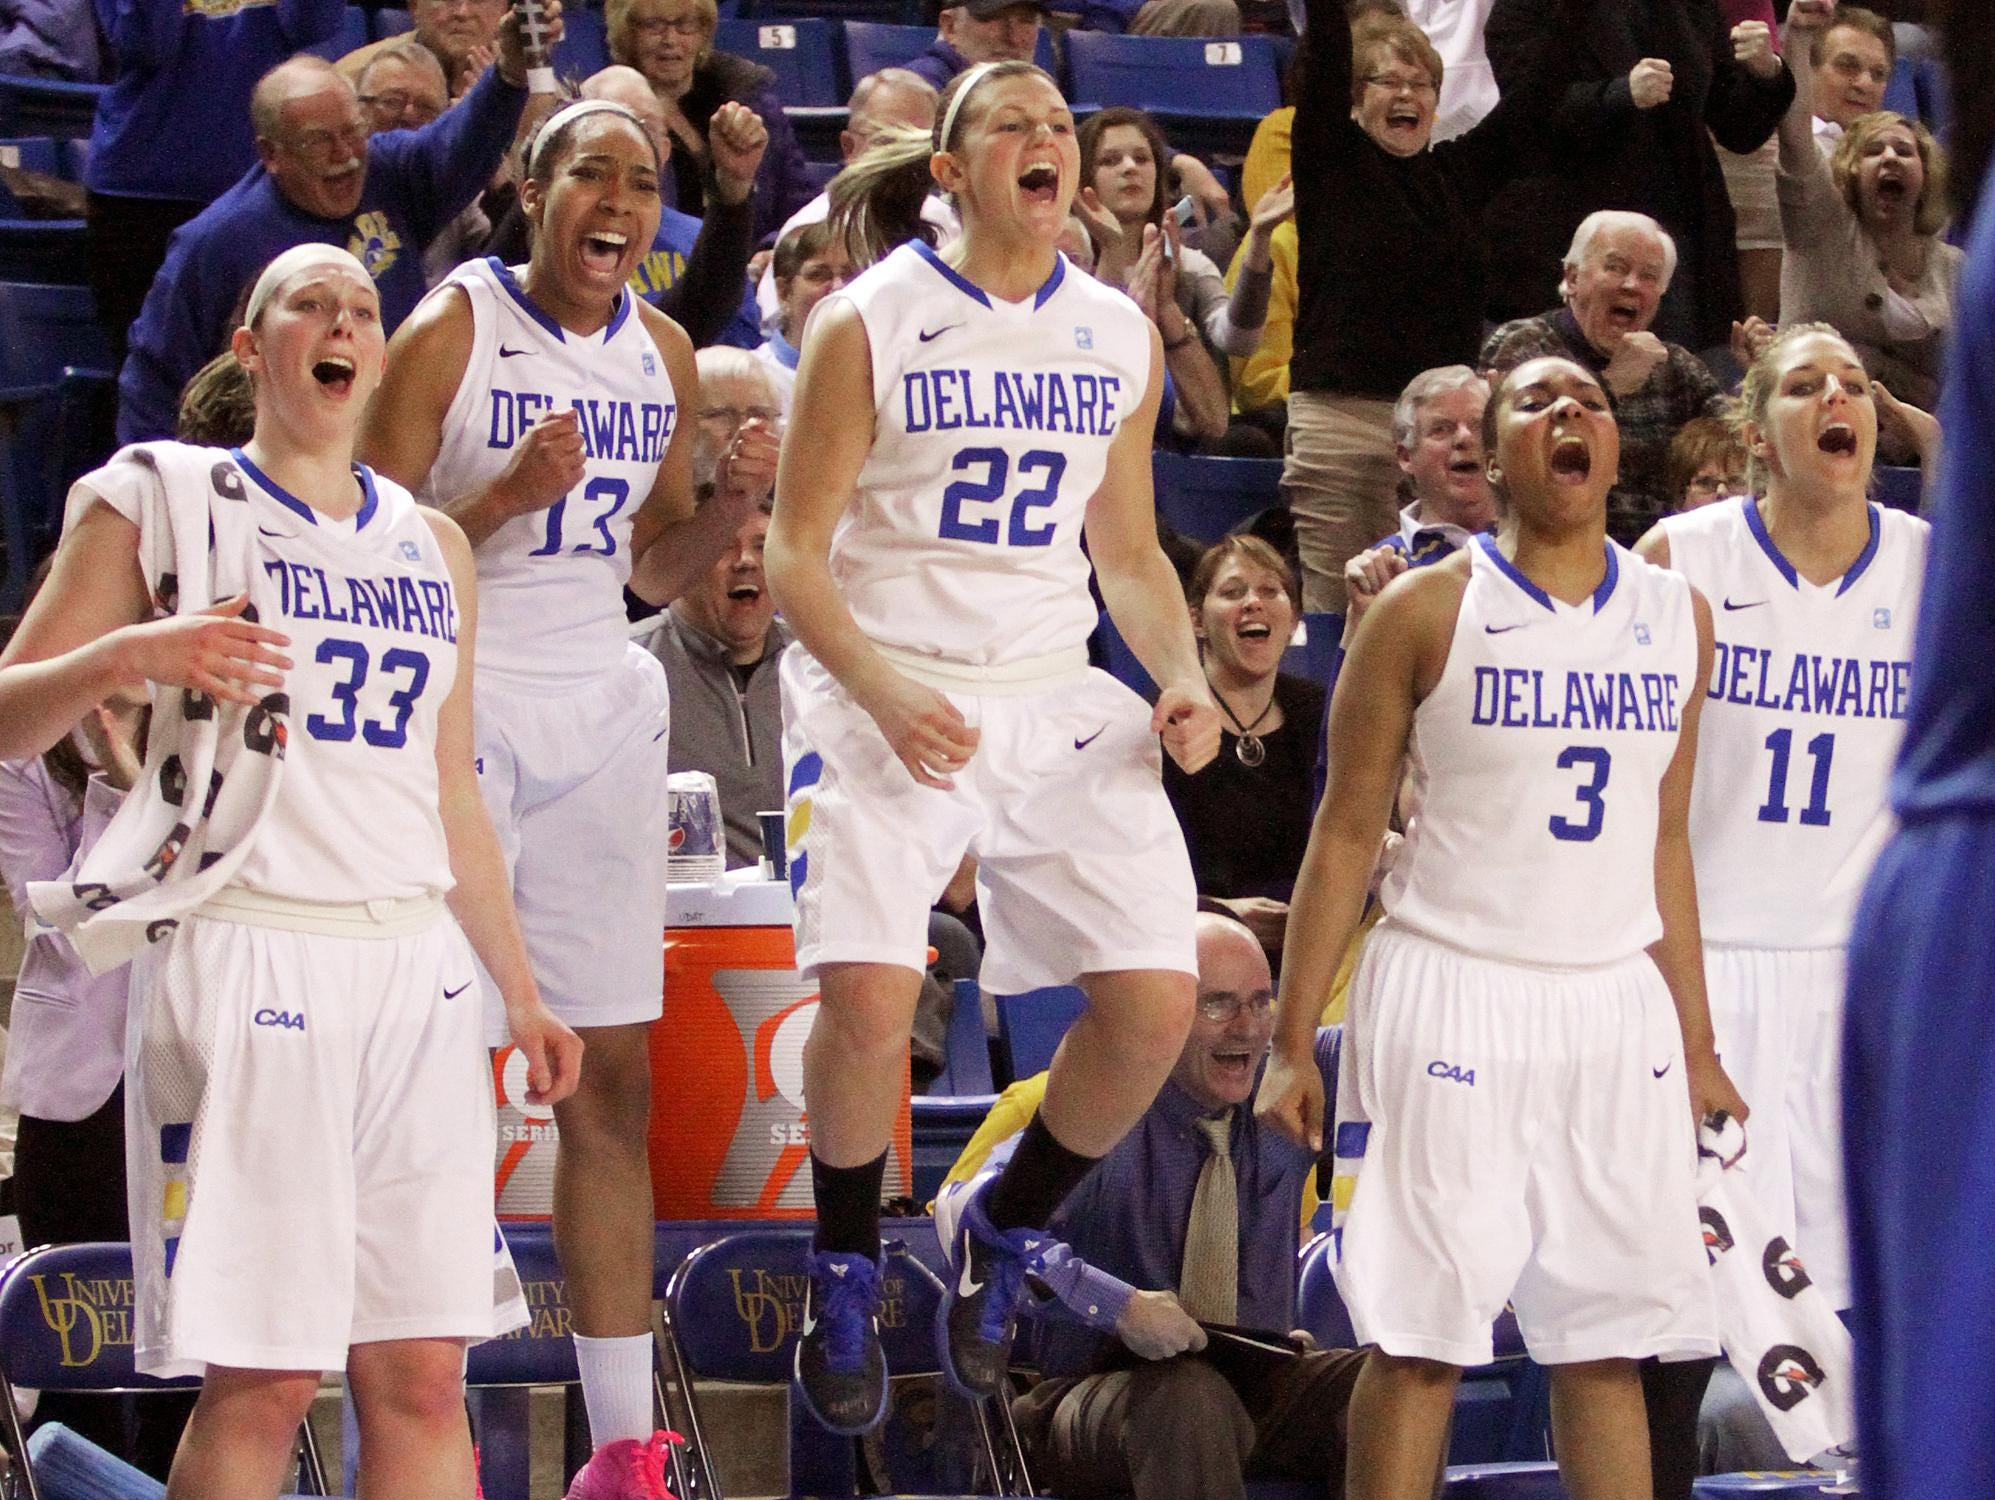 Delaware's (from left) Stephanie Leon, Kelsey Buchanan, Lauren Carra, Jaquetta May and Elena Delle Donne react as senior co-captain Chelsea Craig scores her first basket of the season late in the second half.